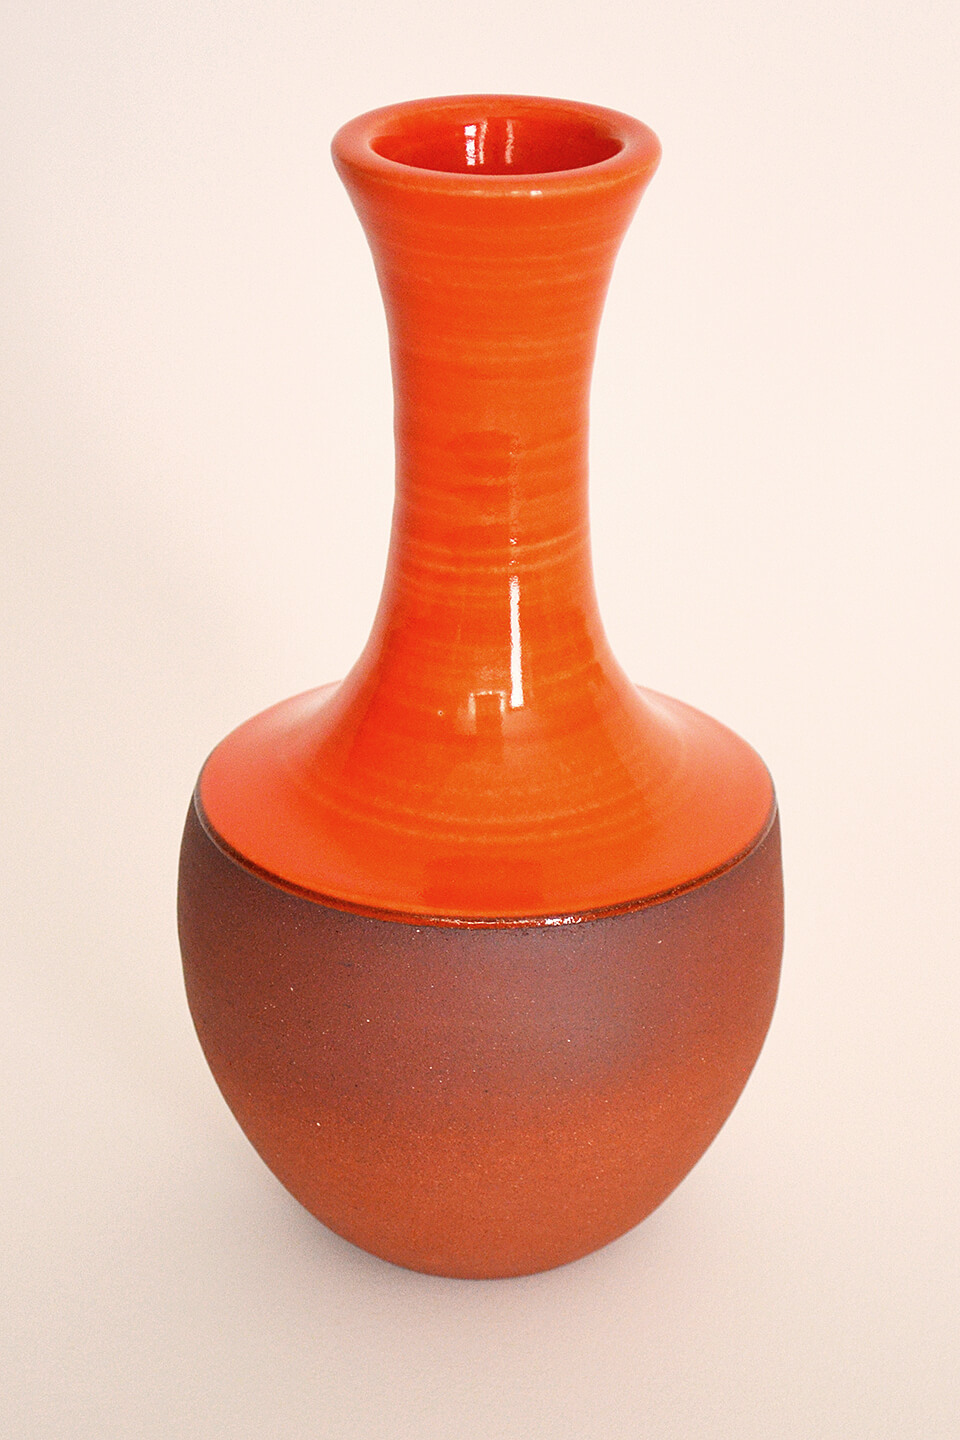 Red-Orange Ceramic Vase No. 614